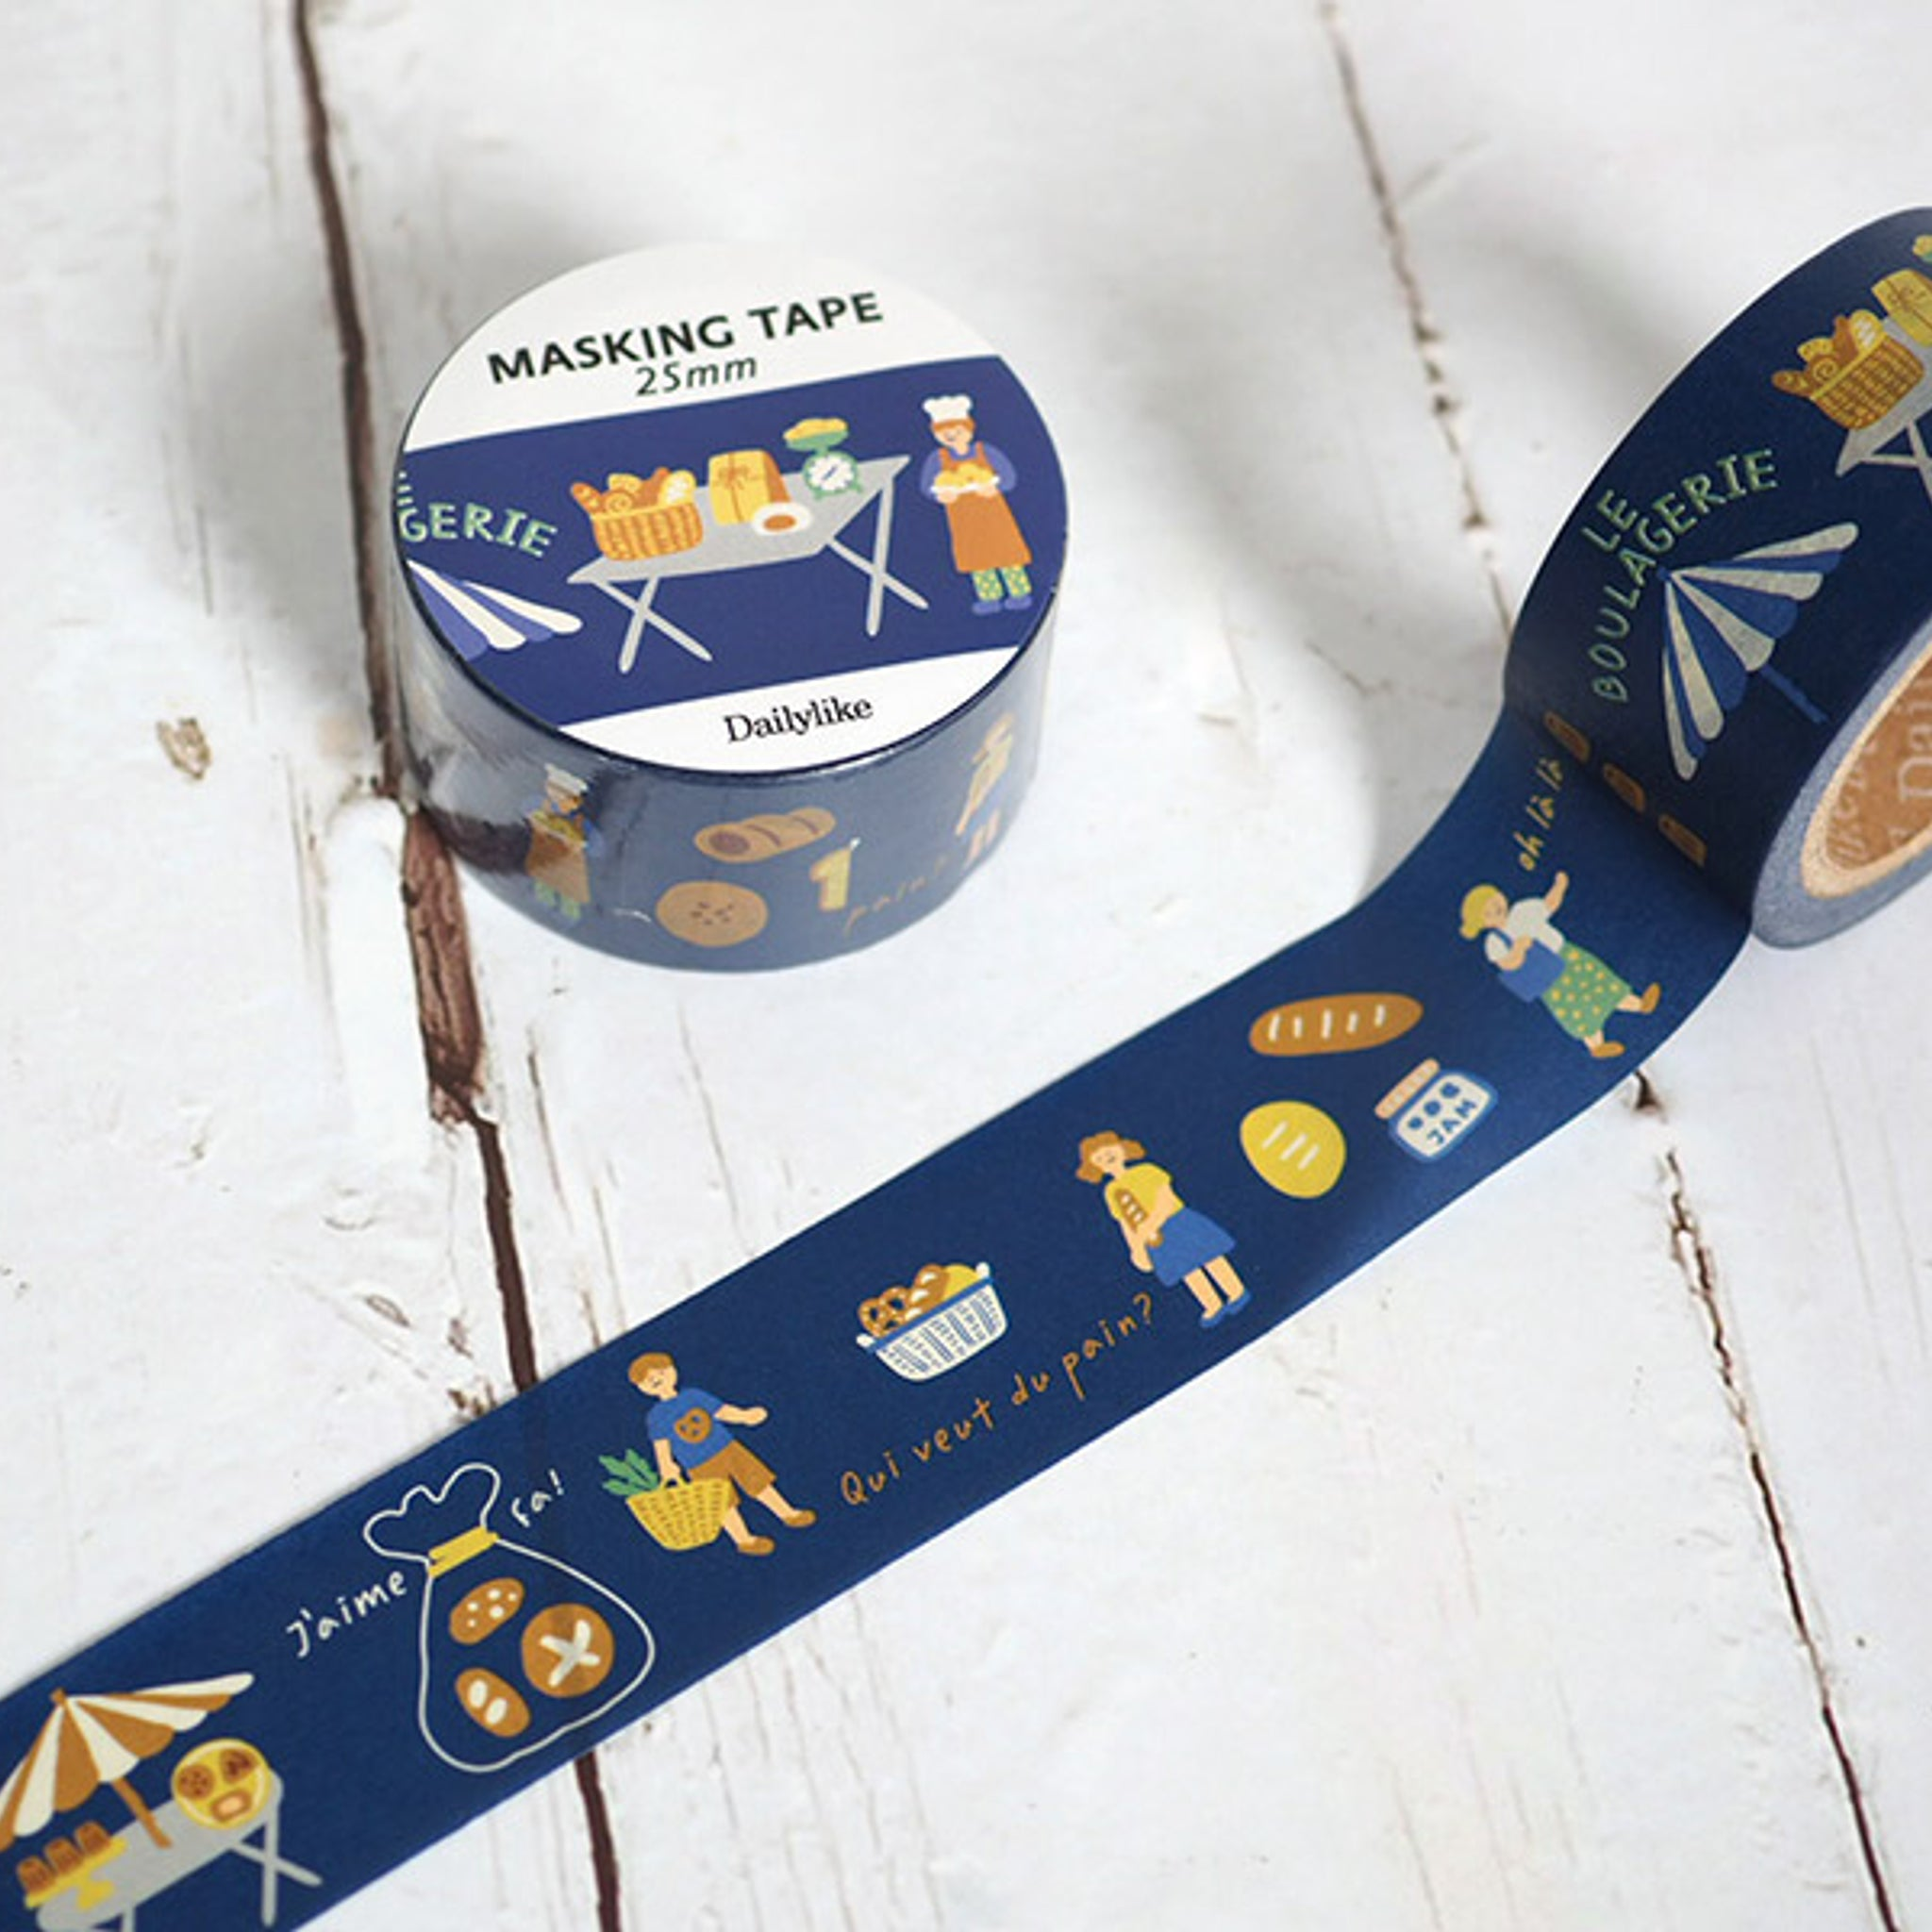 Dailylike 11 Bakery 25mm Masking Tape